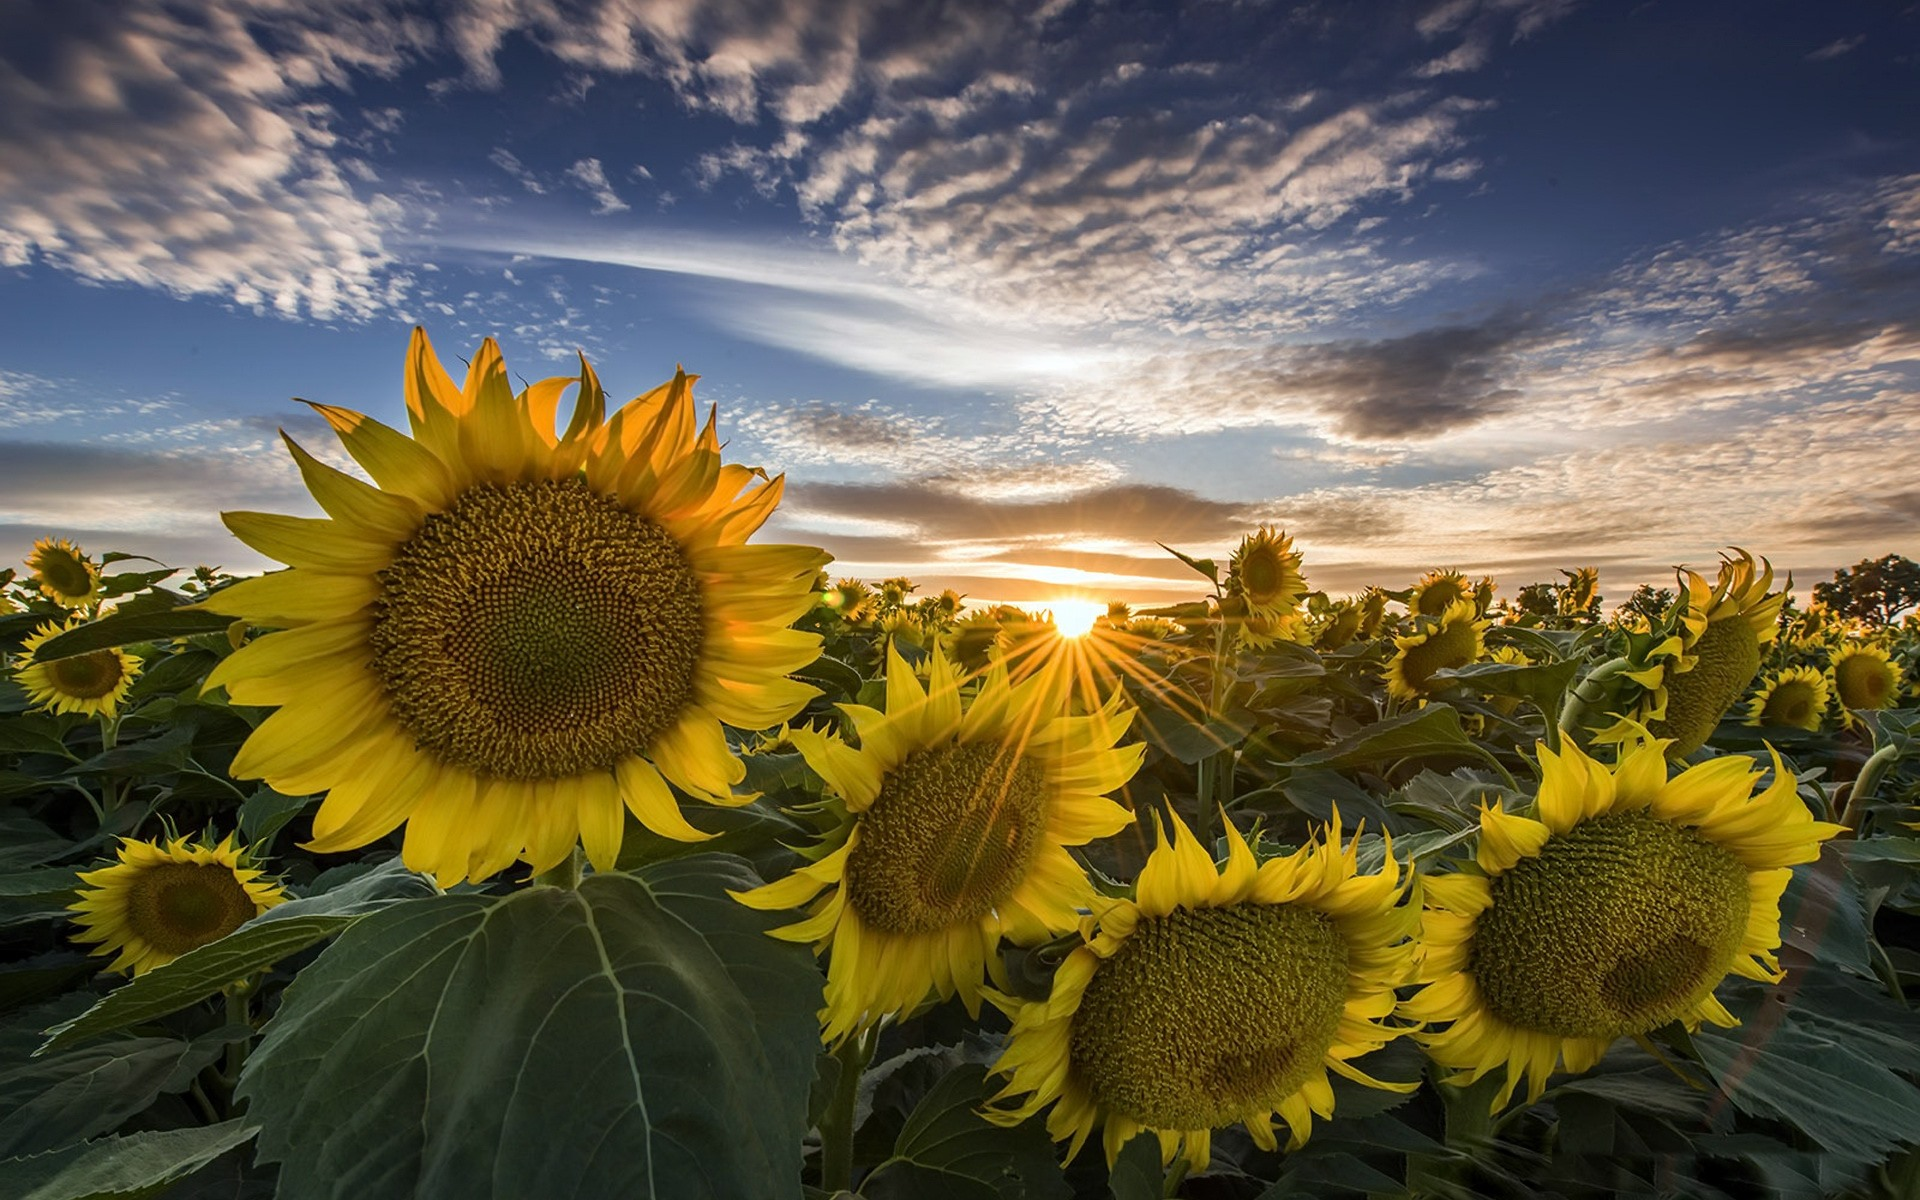 Cute Love Wallpaper Iphone 4s Sonnenblumen Sonnenaufgang Sommer 1920x1200 Hd